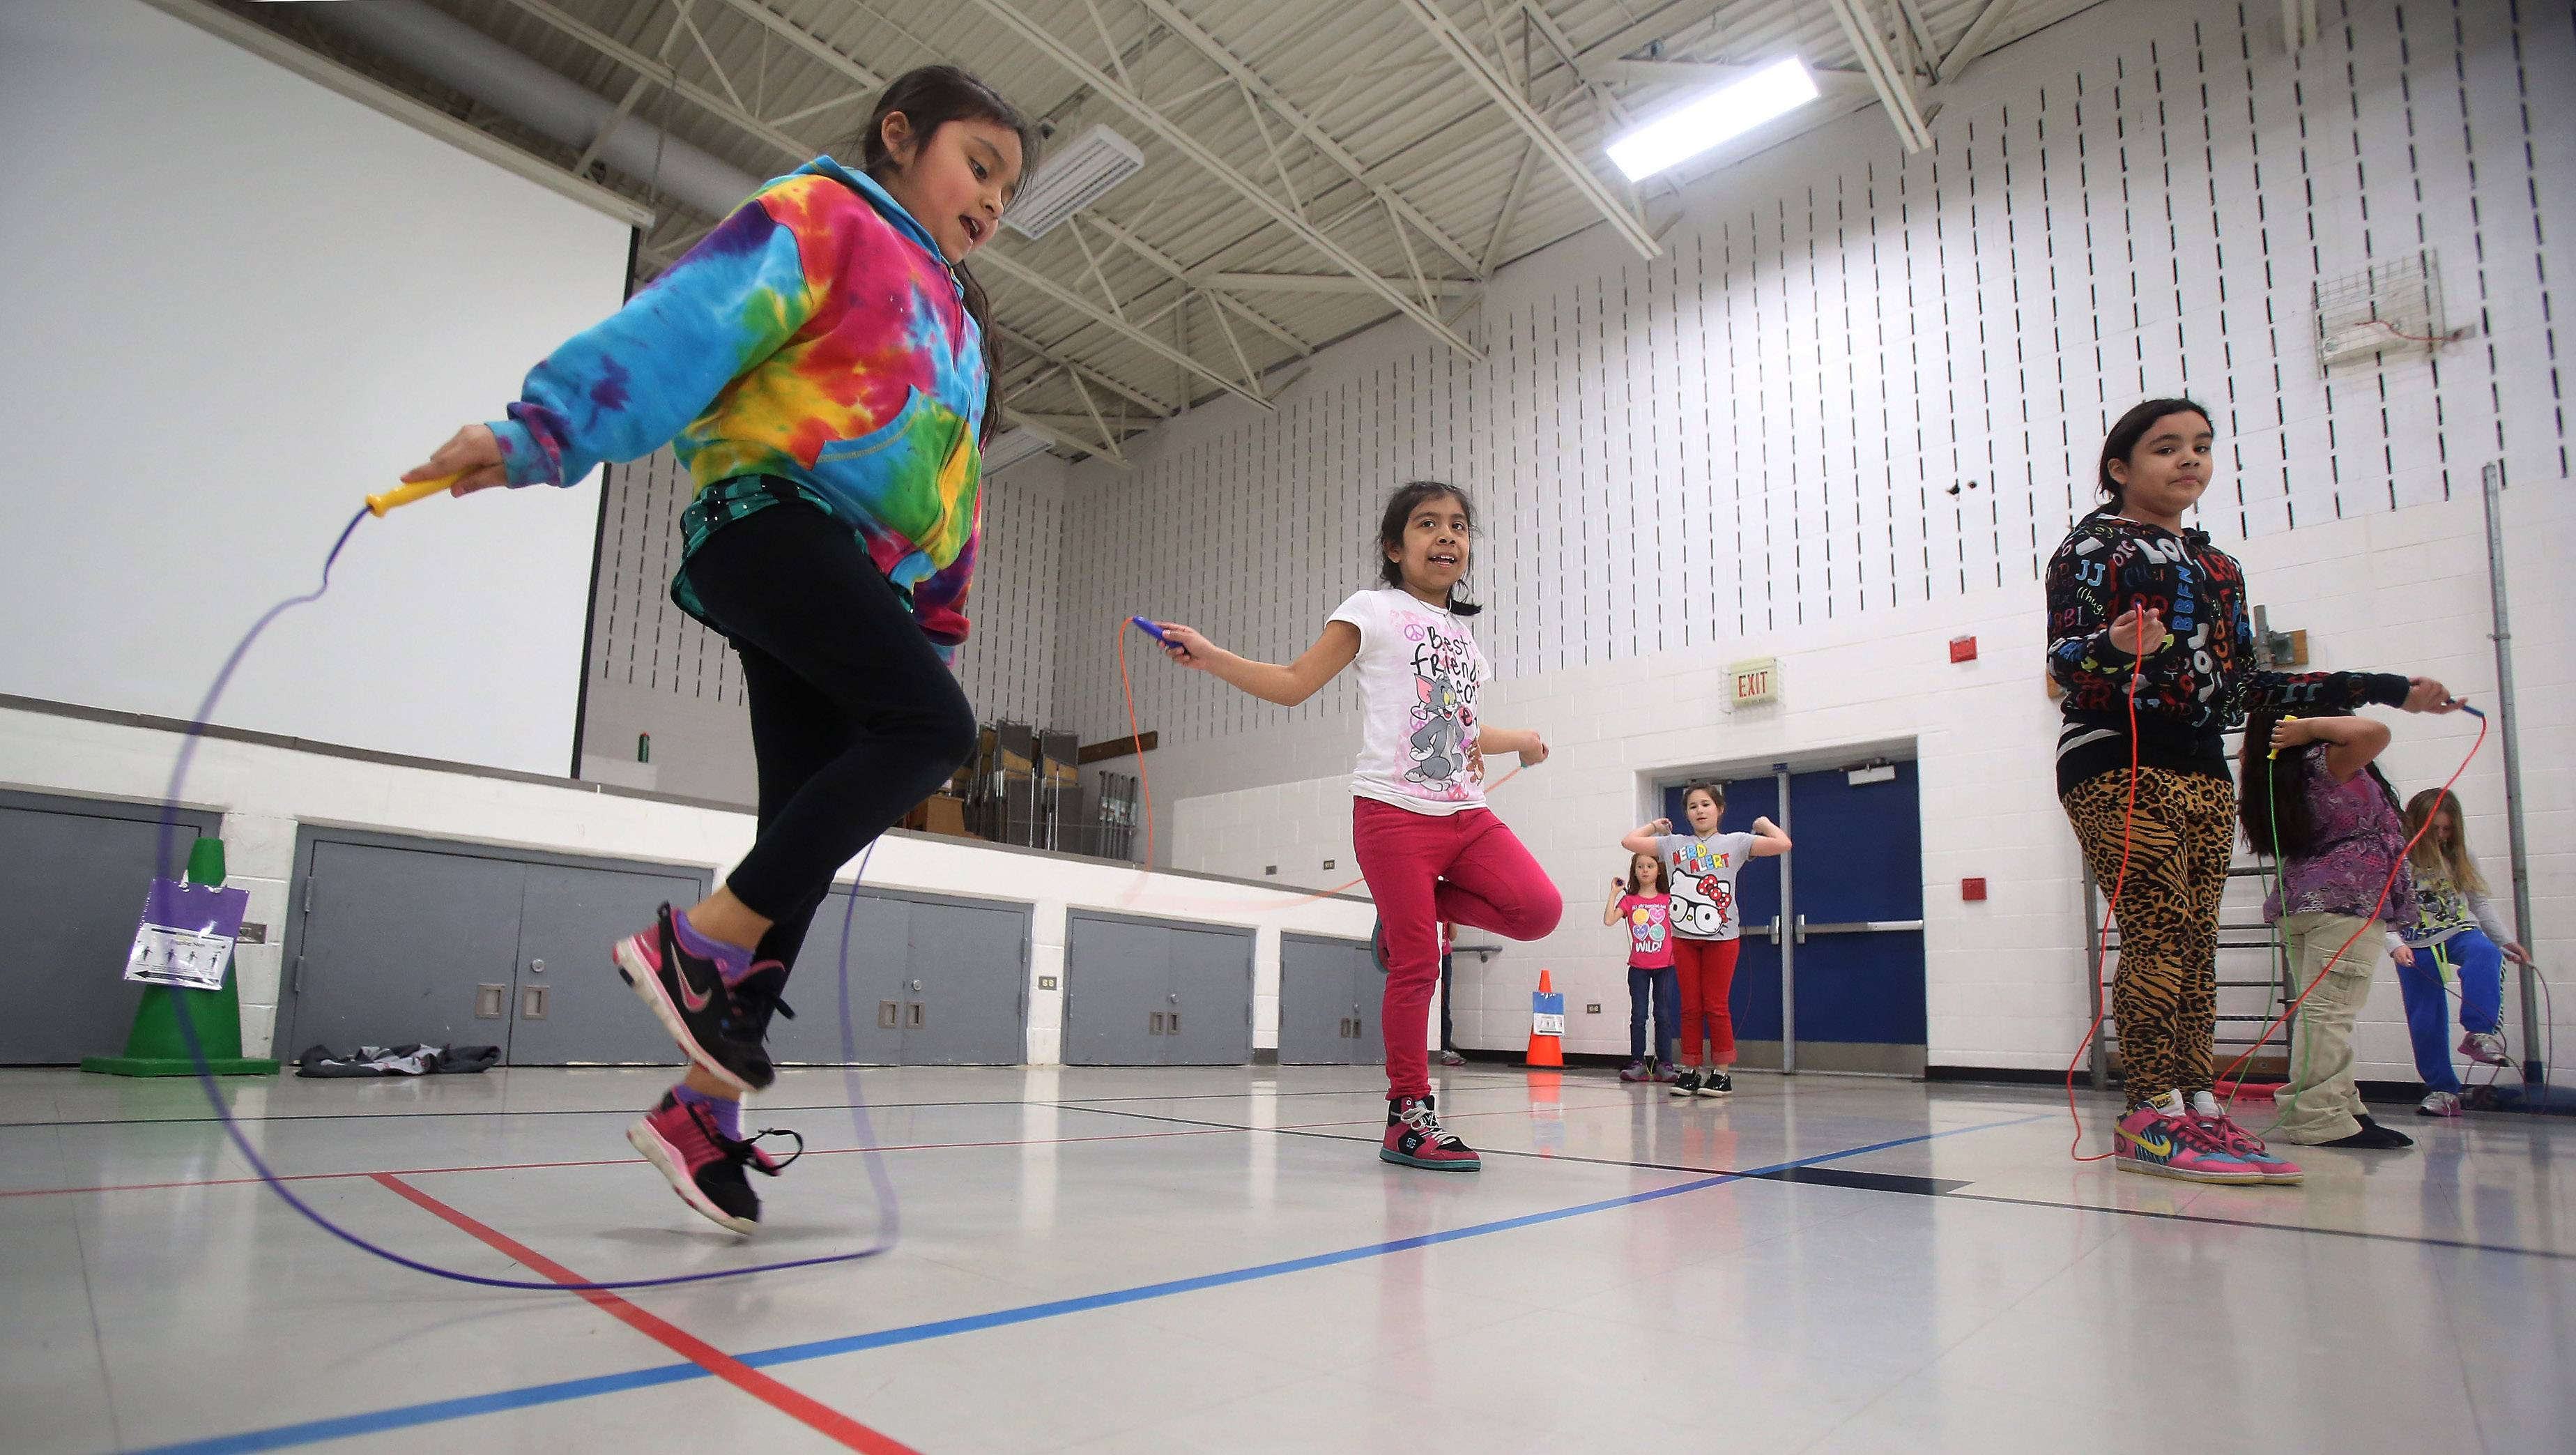 Third-graders Daaylin Bustos, left, Alejandro Guzman and Kassandra Bueno jump rope as part of Jump Rope for Heart on Tuesday at Mechanics Grove School in Mundelein. Students in third through fifth grades raised money for the American Heart Association.